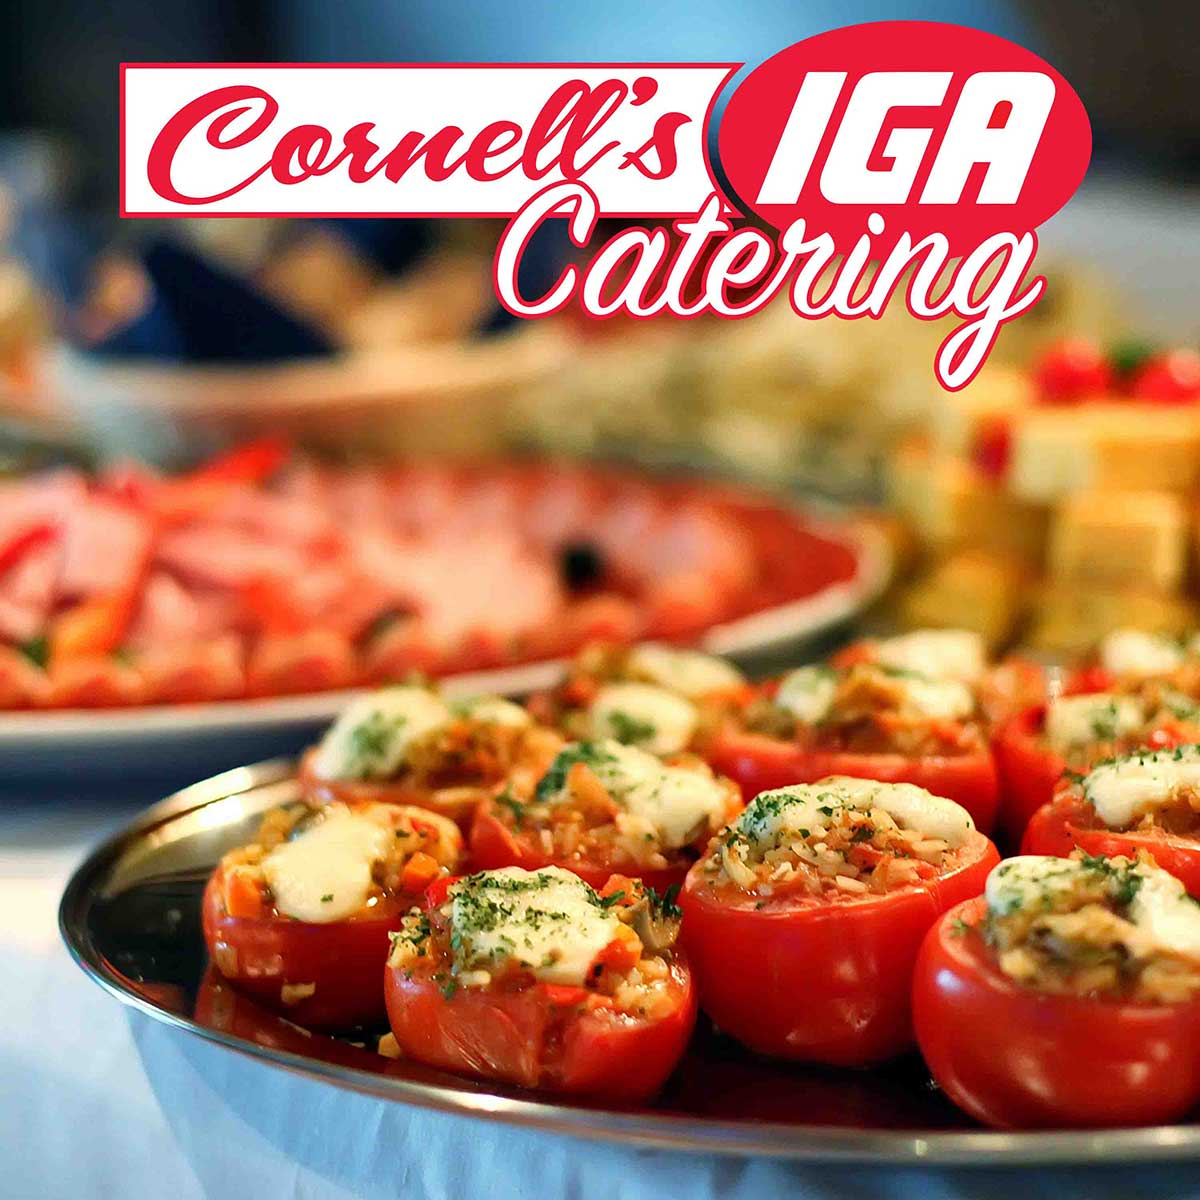 Cornell's Catering